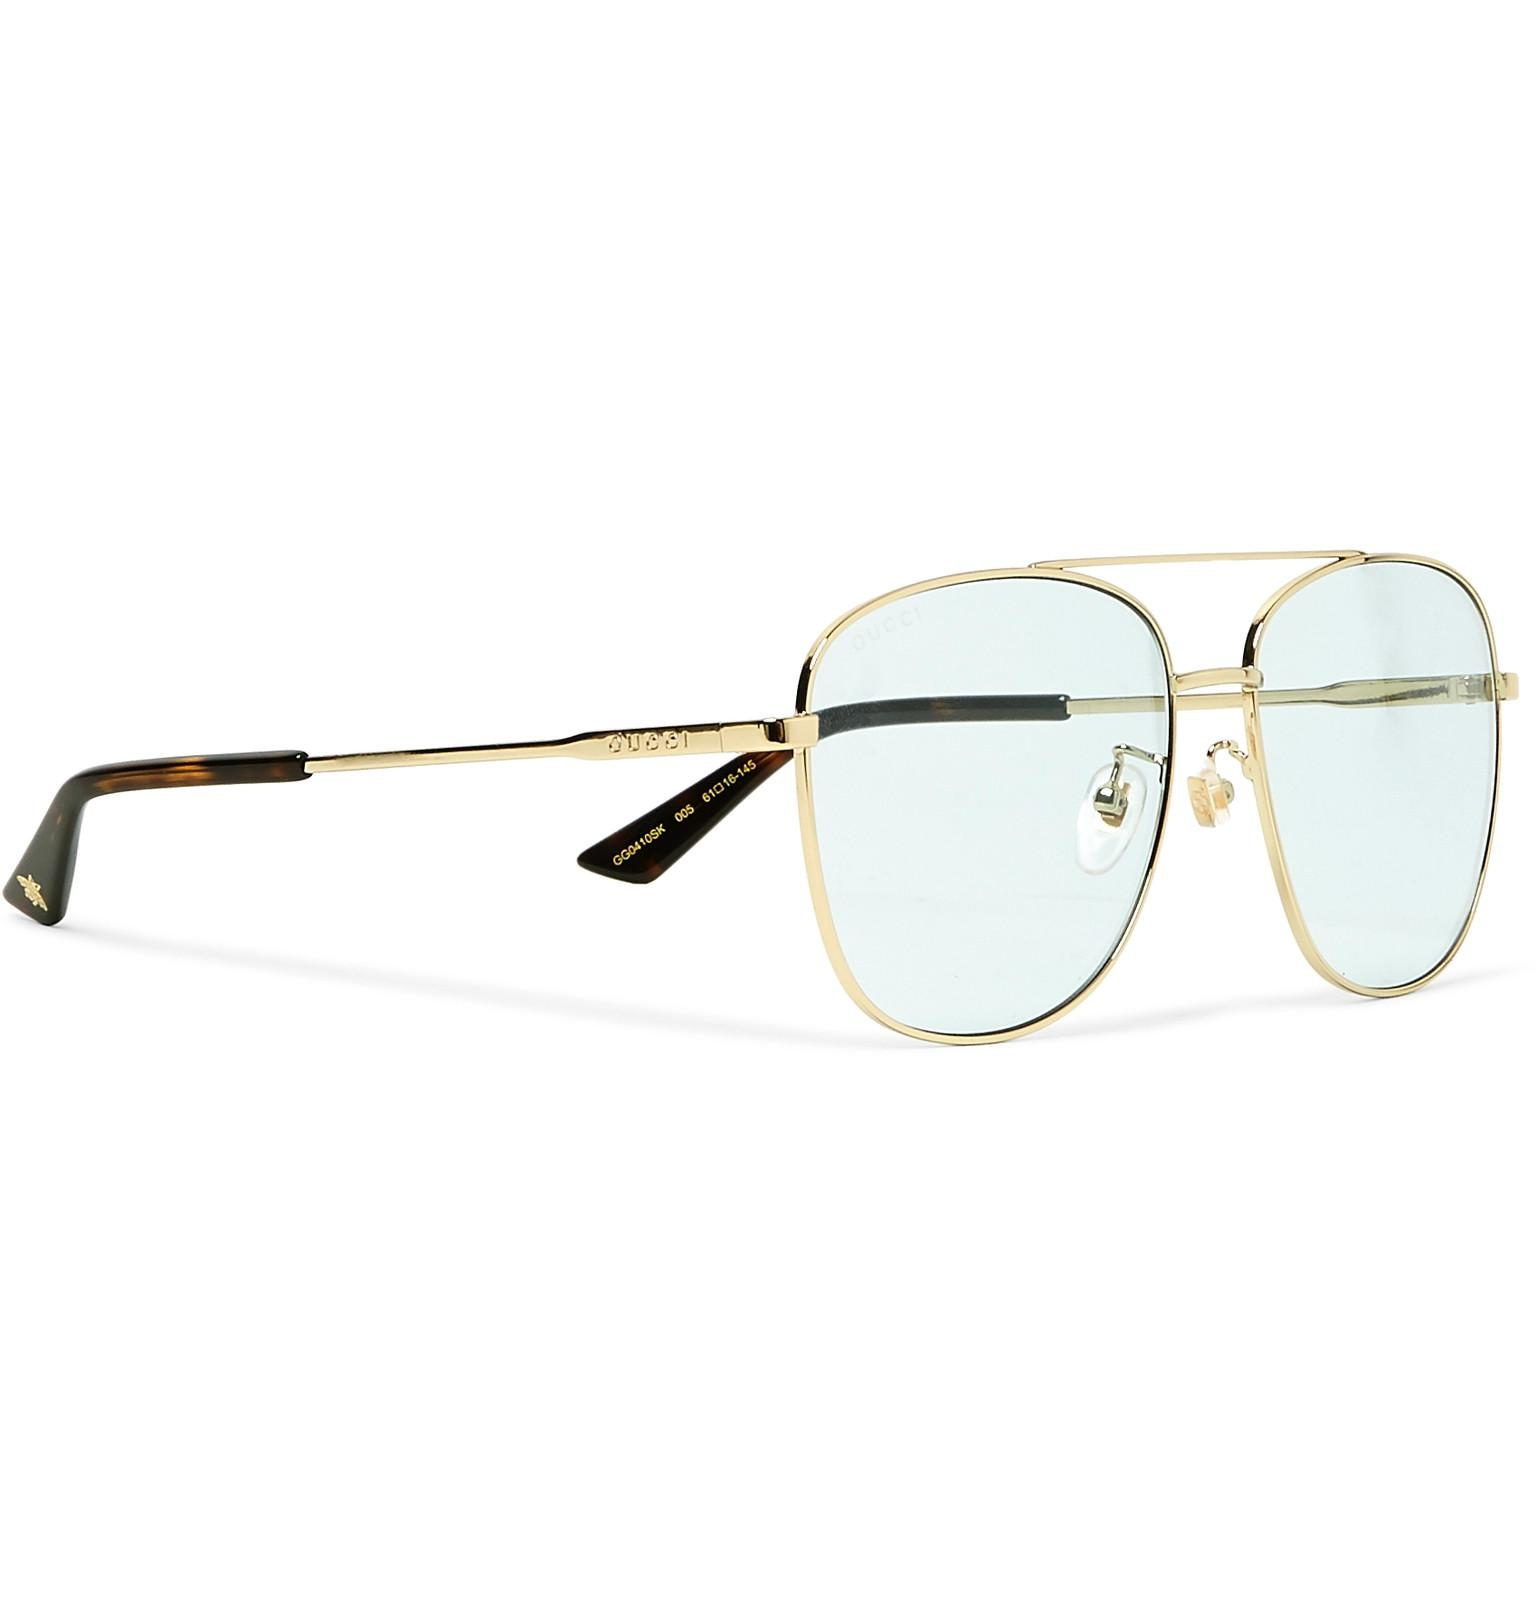 4c398bde5d0 Gucci - Metallic Aviator-style Gold-tone And Acetate Sunglasses for Men -  Lyst. View fullscreen